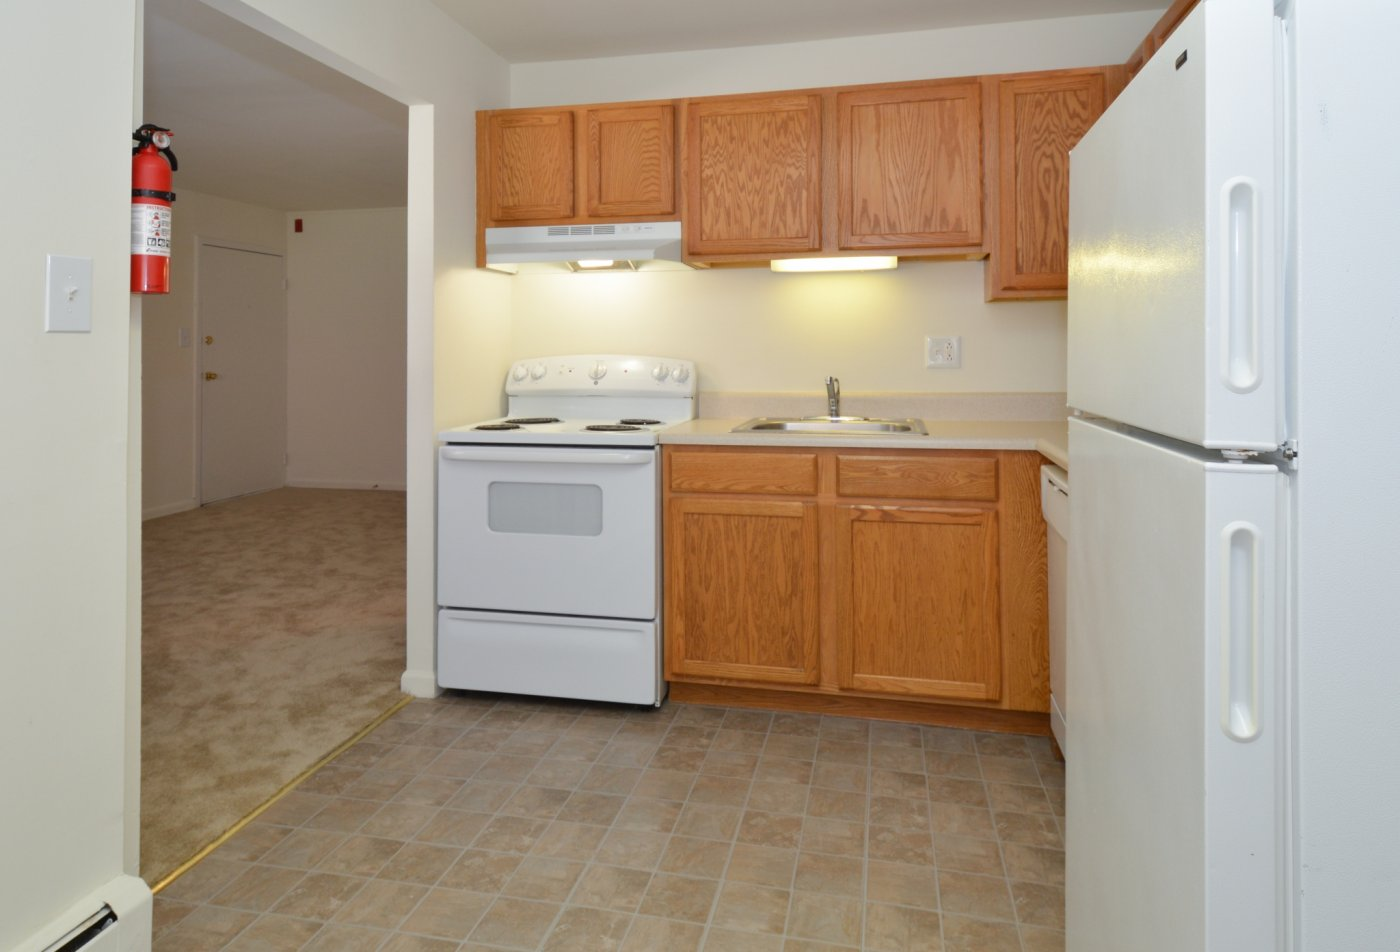 Modern Kitchen   Boothwyn PA Apartment For Rent   Boothwyn Court Apartments